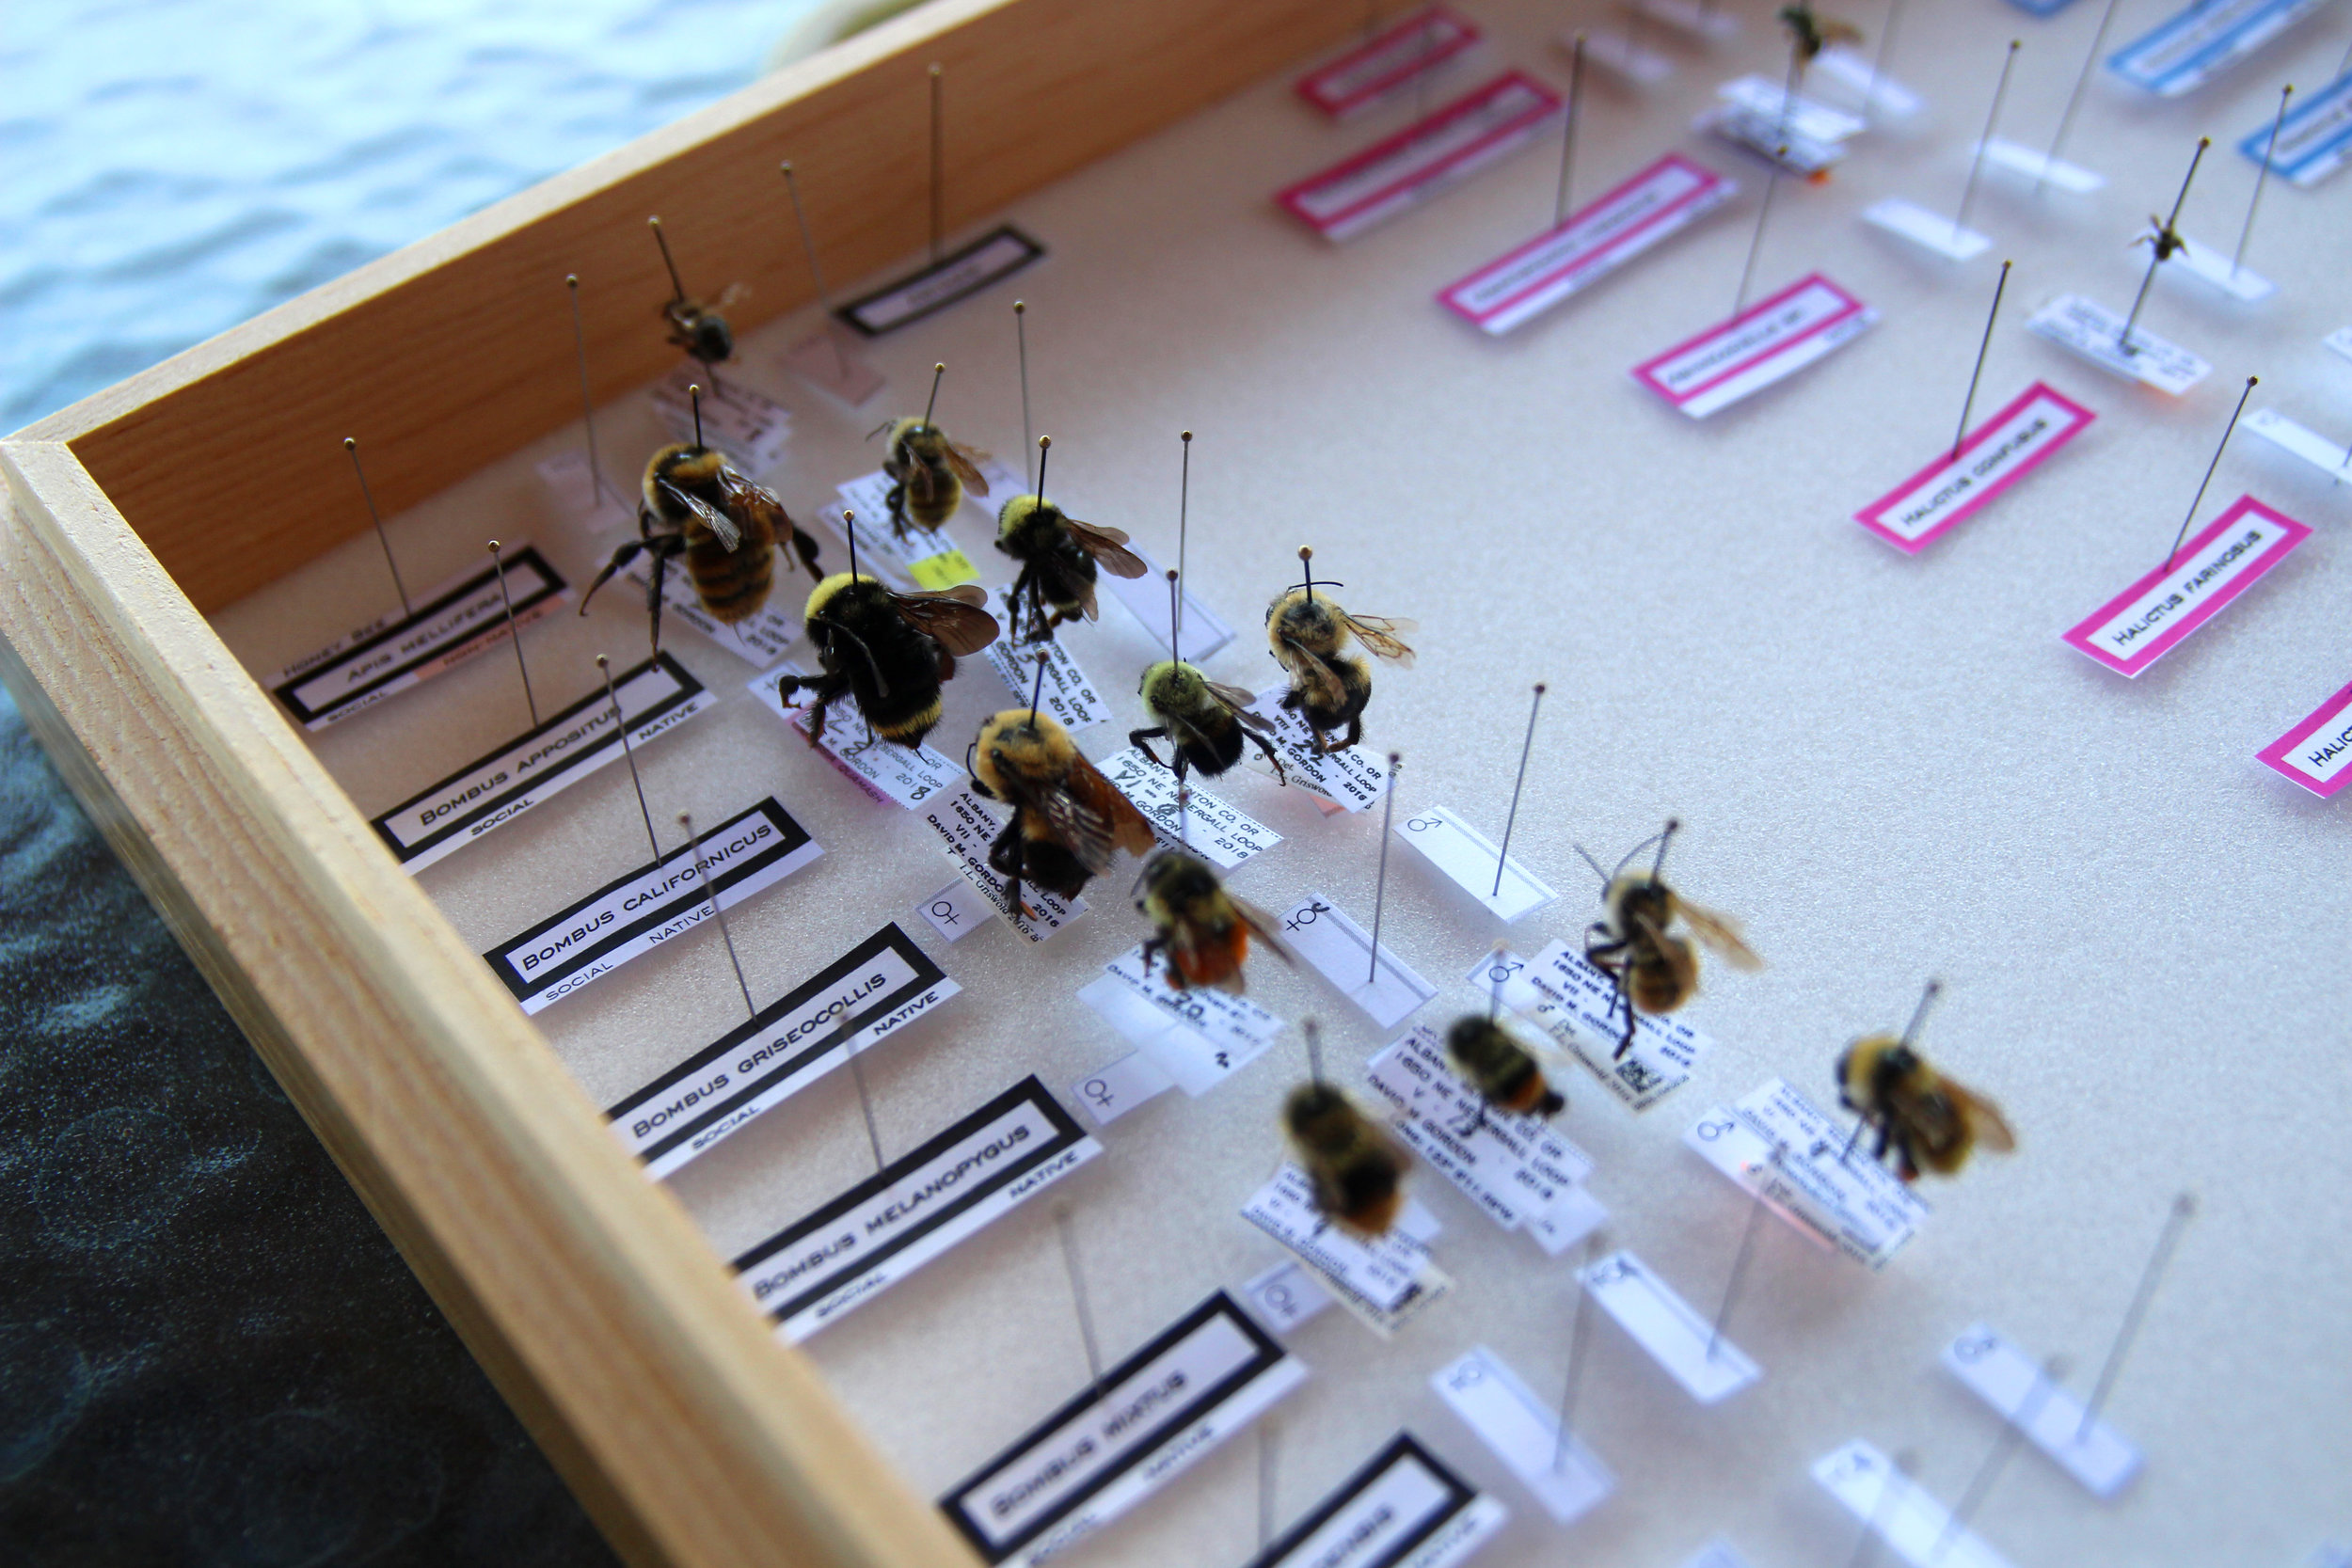 A collection of some of the bees found on Kenagy's farm.